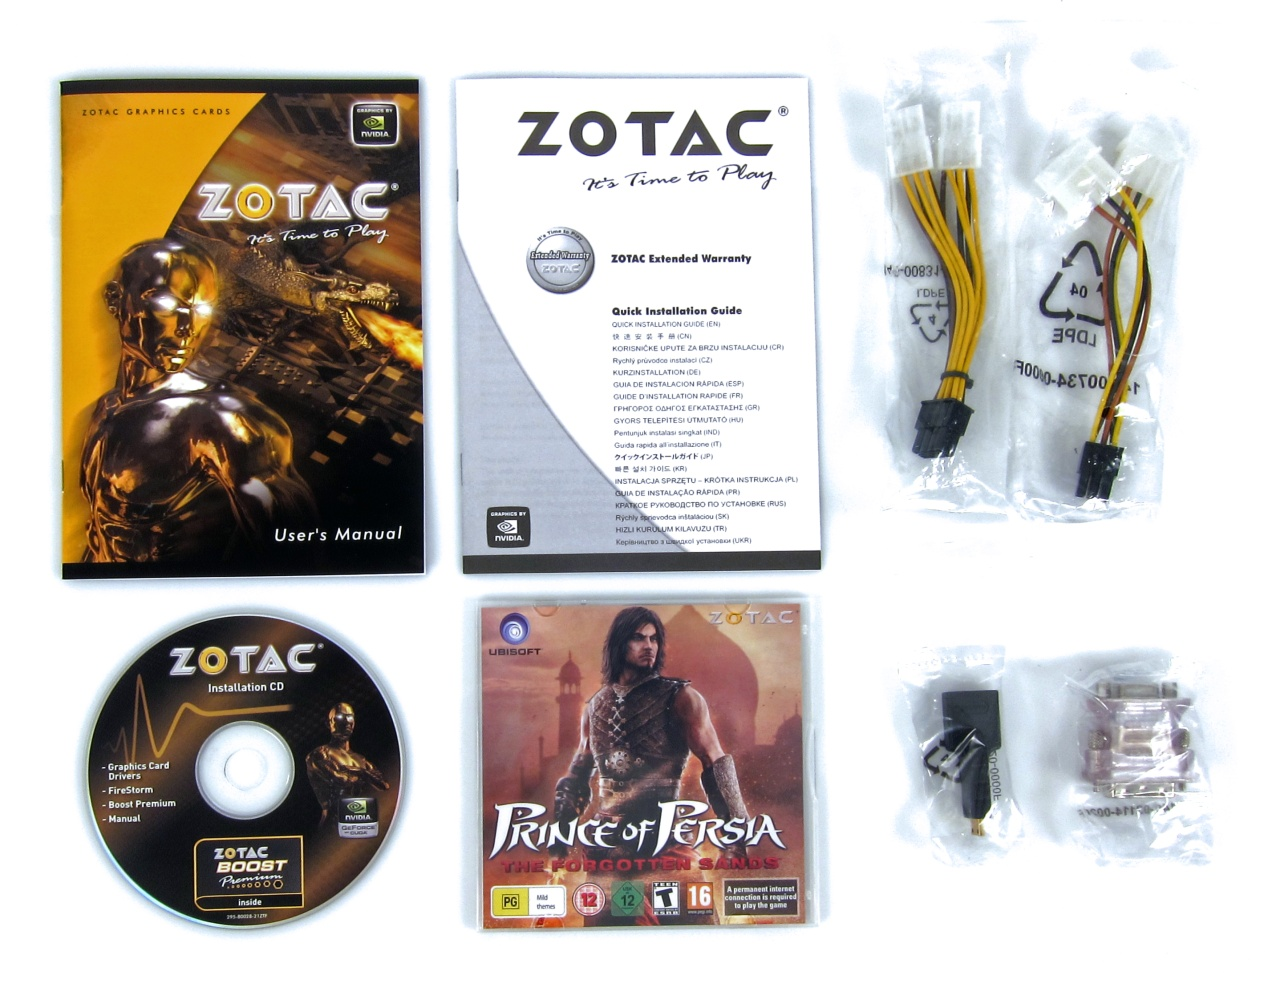 big_580570_zotac9.jpg